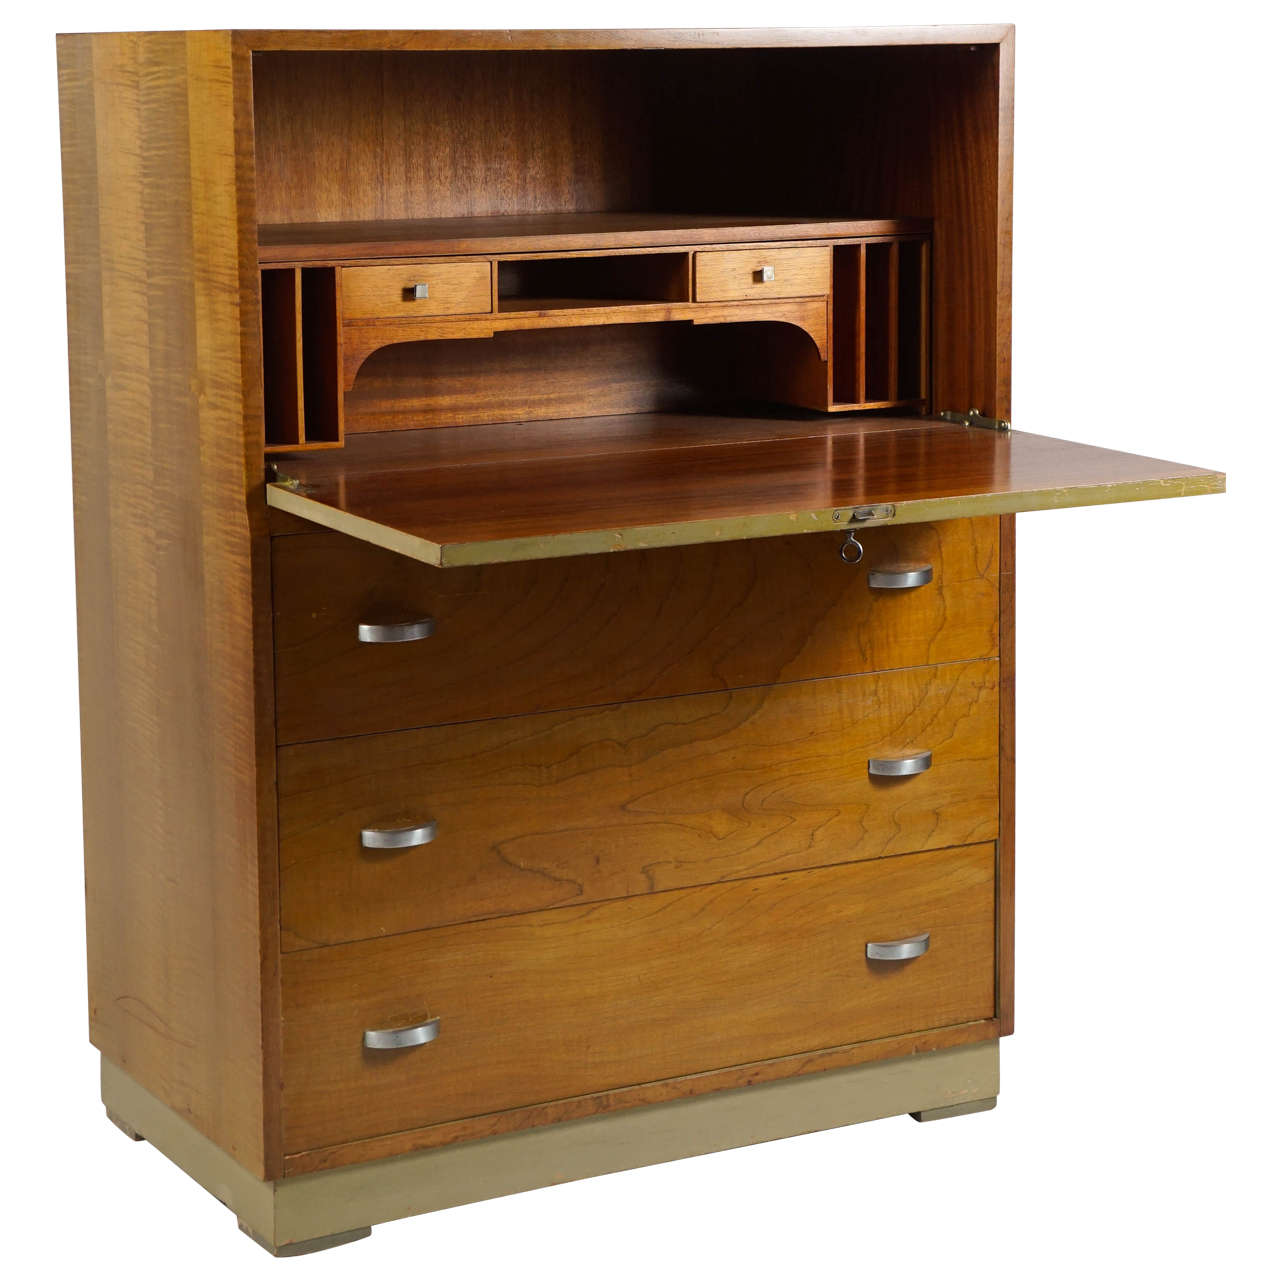 Secretaire by Gilbert Rohde